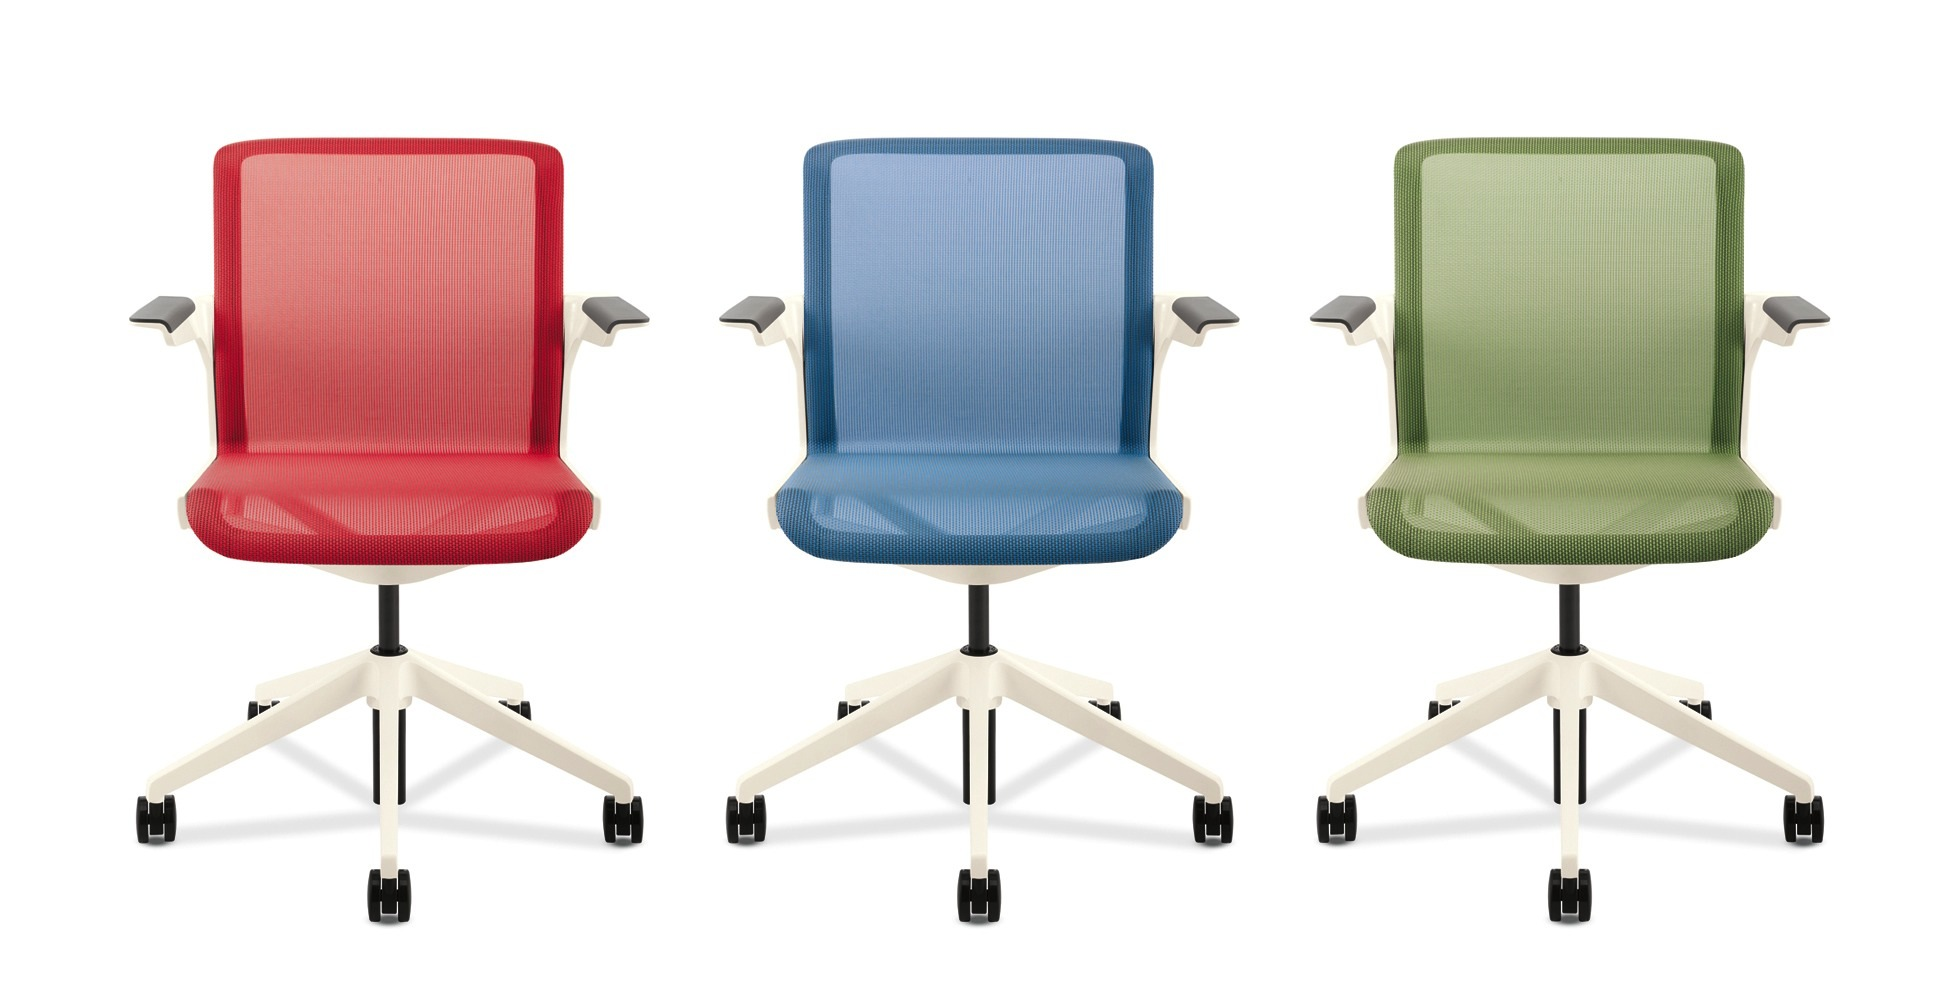 allsteel relate chair reviews portable stadium chairs bmw designworksusa and design award winning